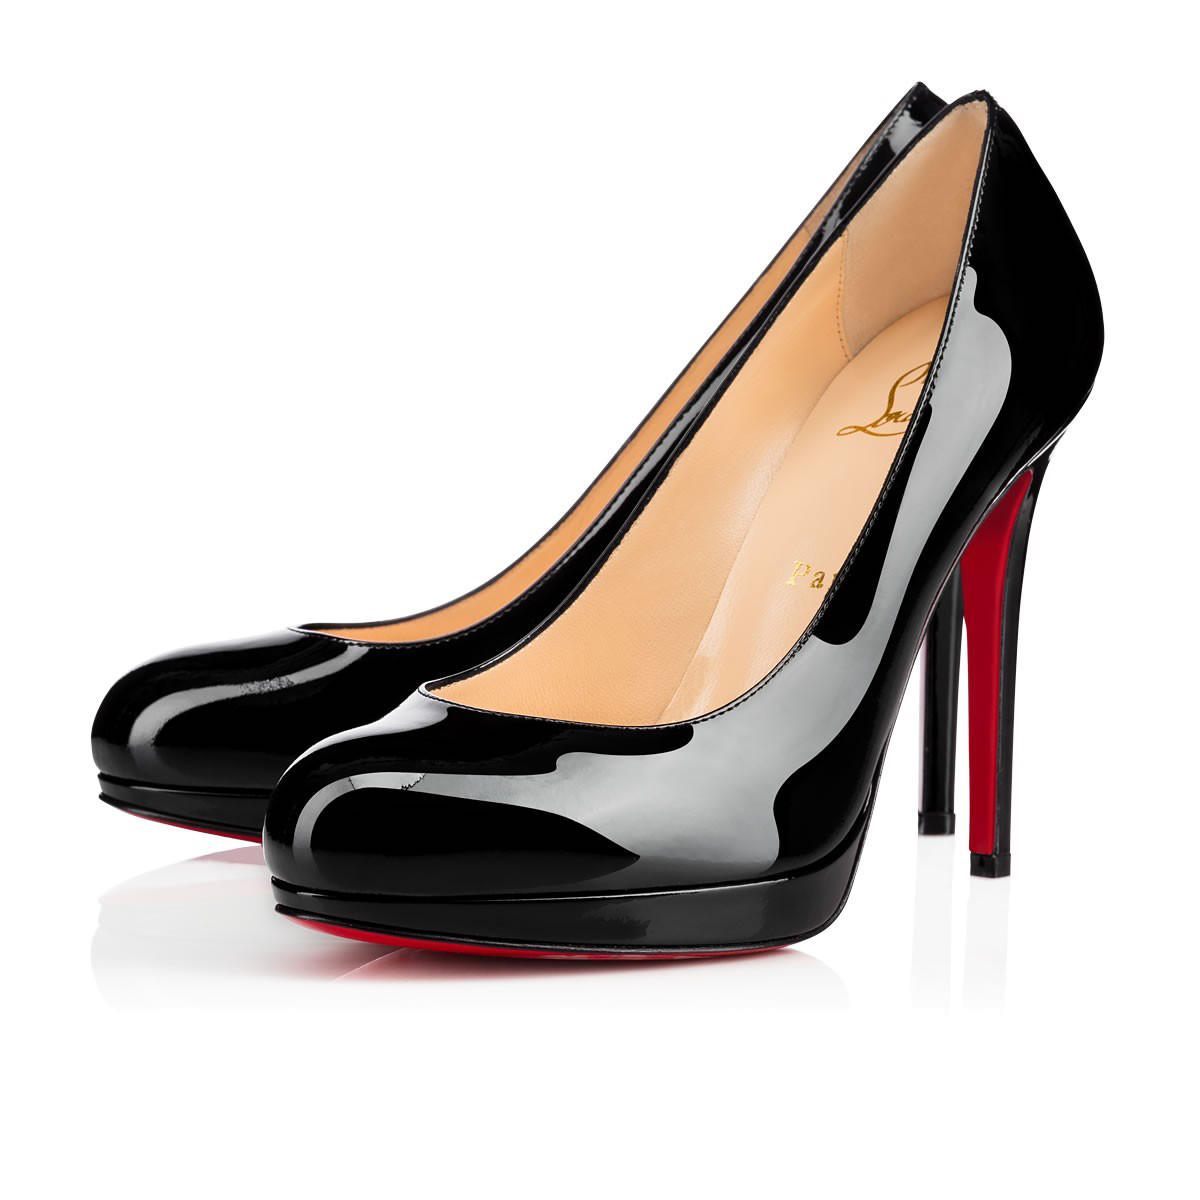 530b4d5a10 Christian Louboutin Dirditta Patent Platform Red Sole Pump In Black ...